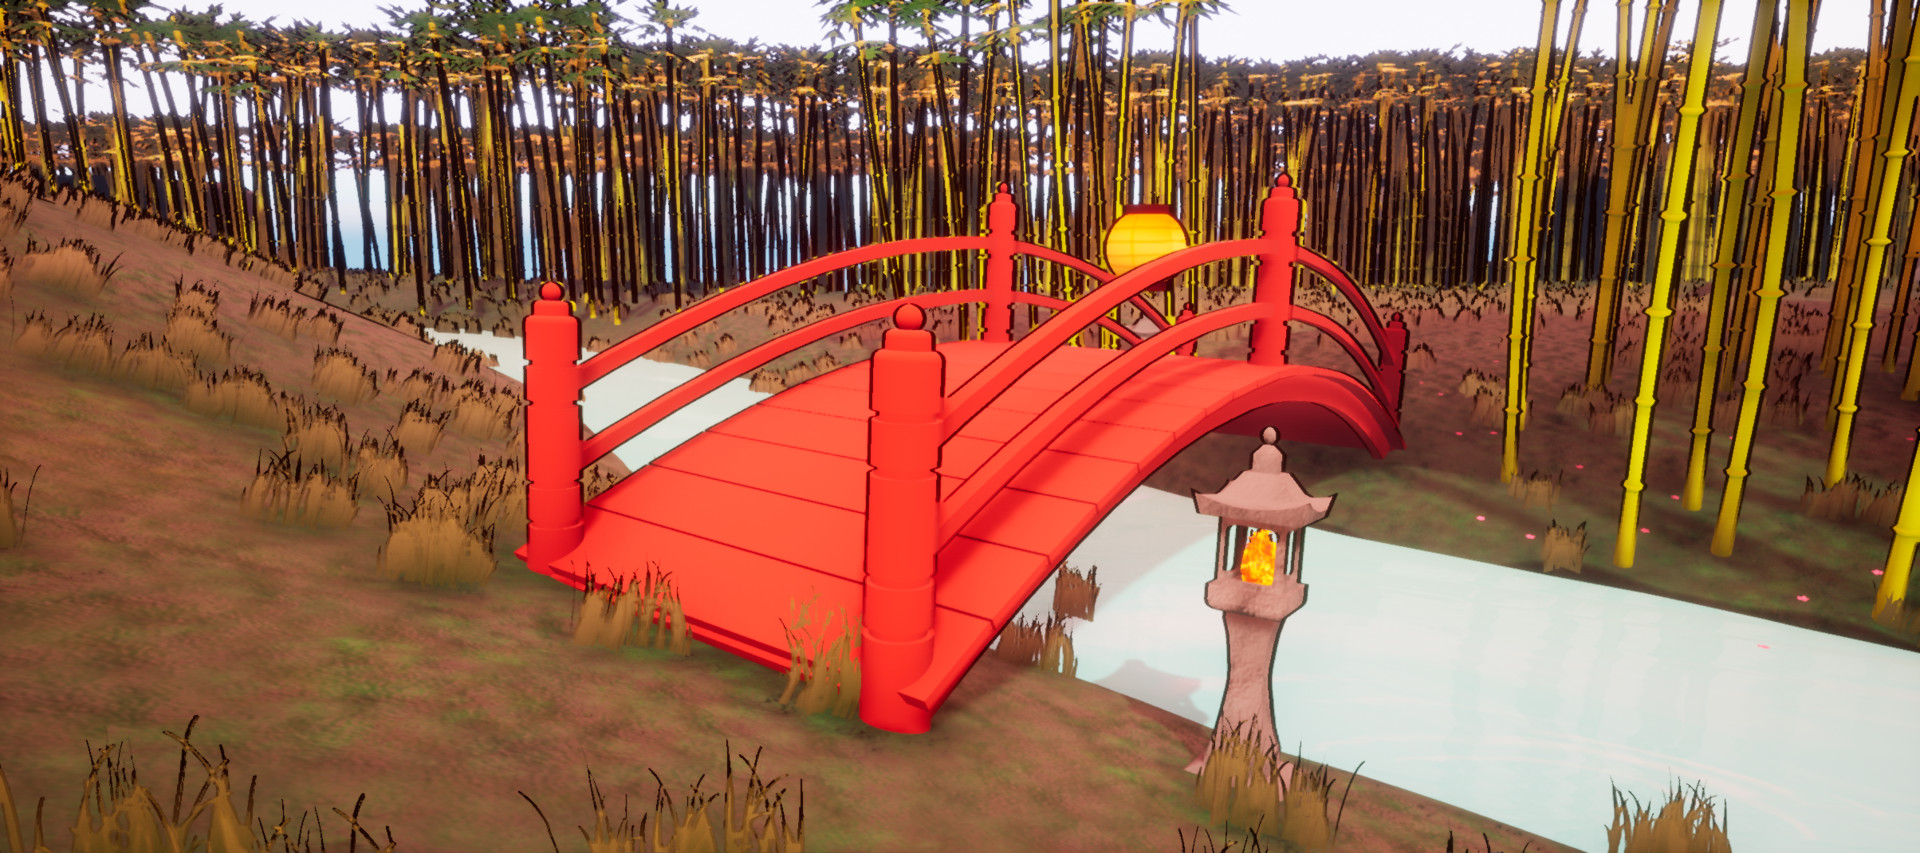 The red bridge from another angle.